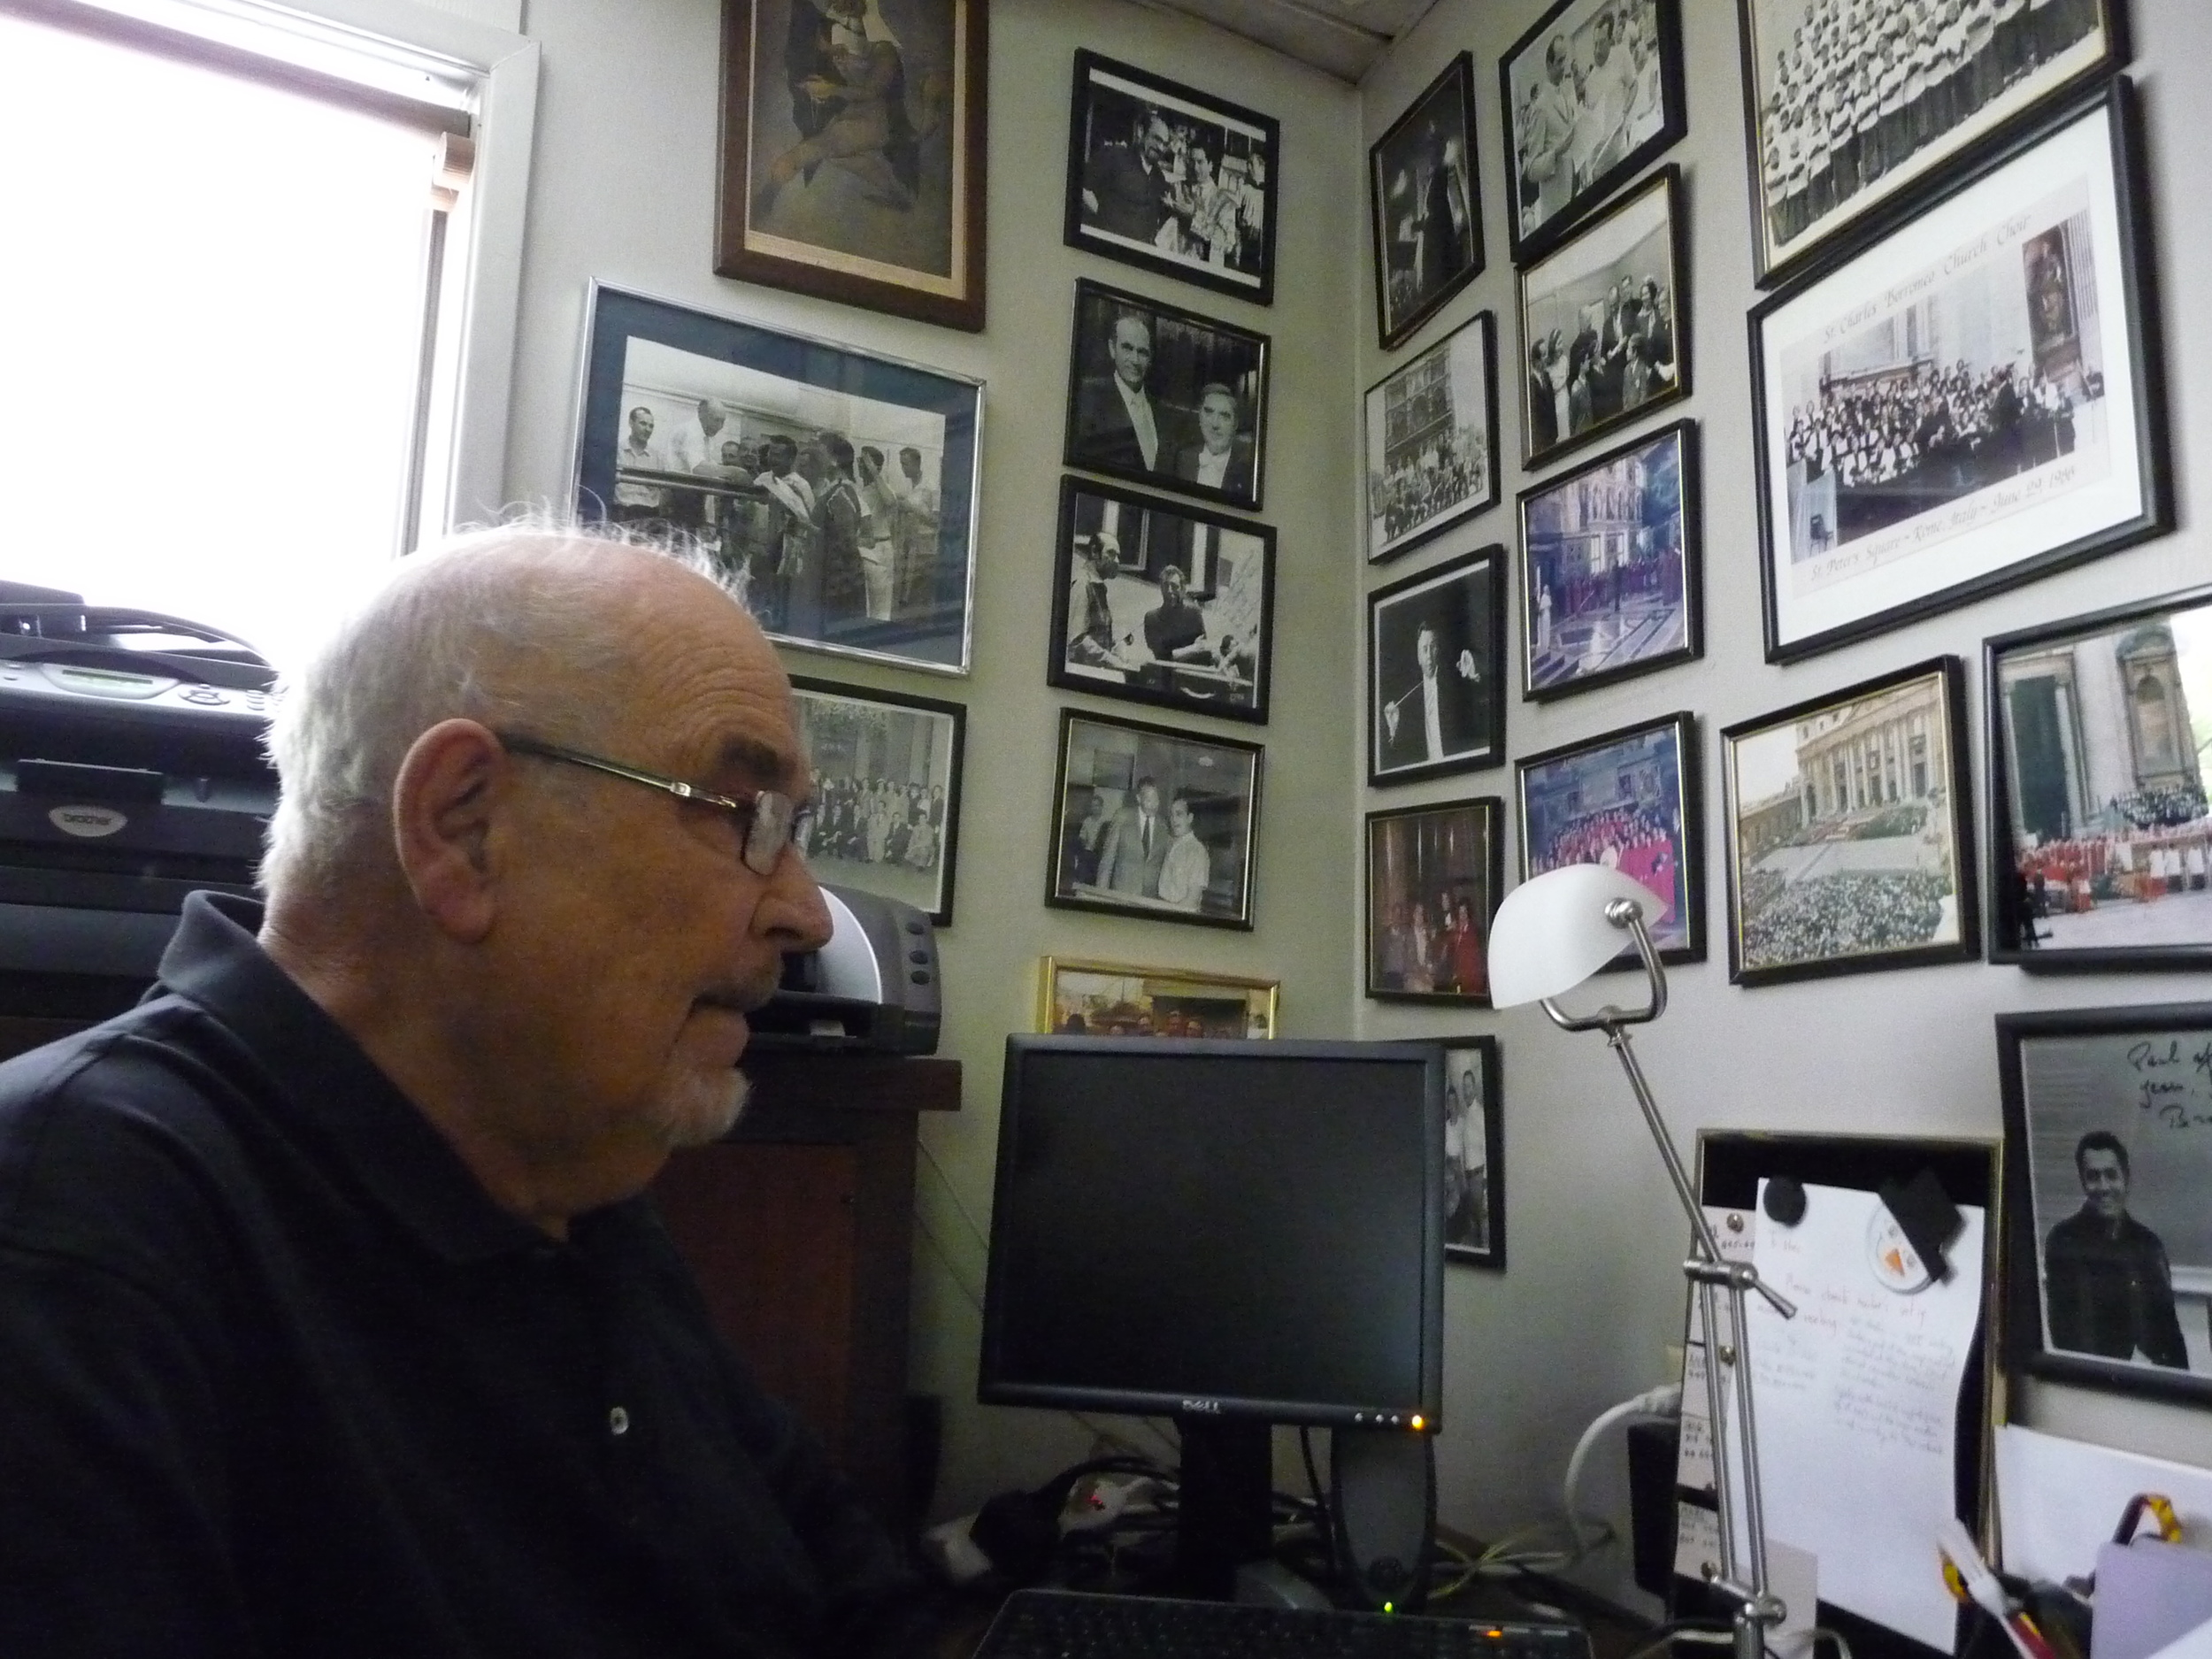 Conductor Paul Salamunovich in his home office (his copy of a portrait of him and Durufle hangs behind him, Durufle's copy still hangs in the former Durufle residence in France).